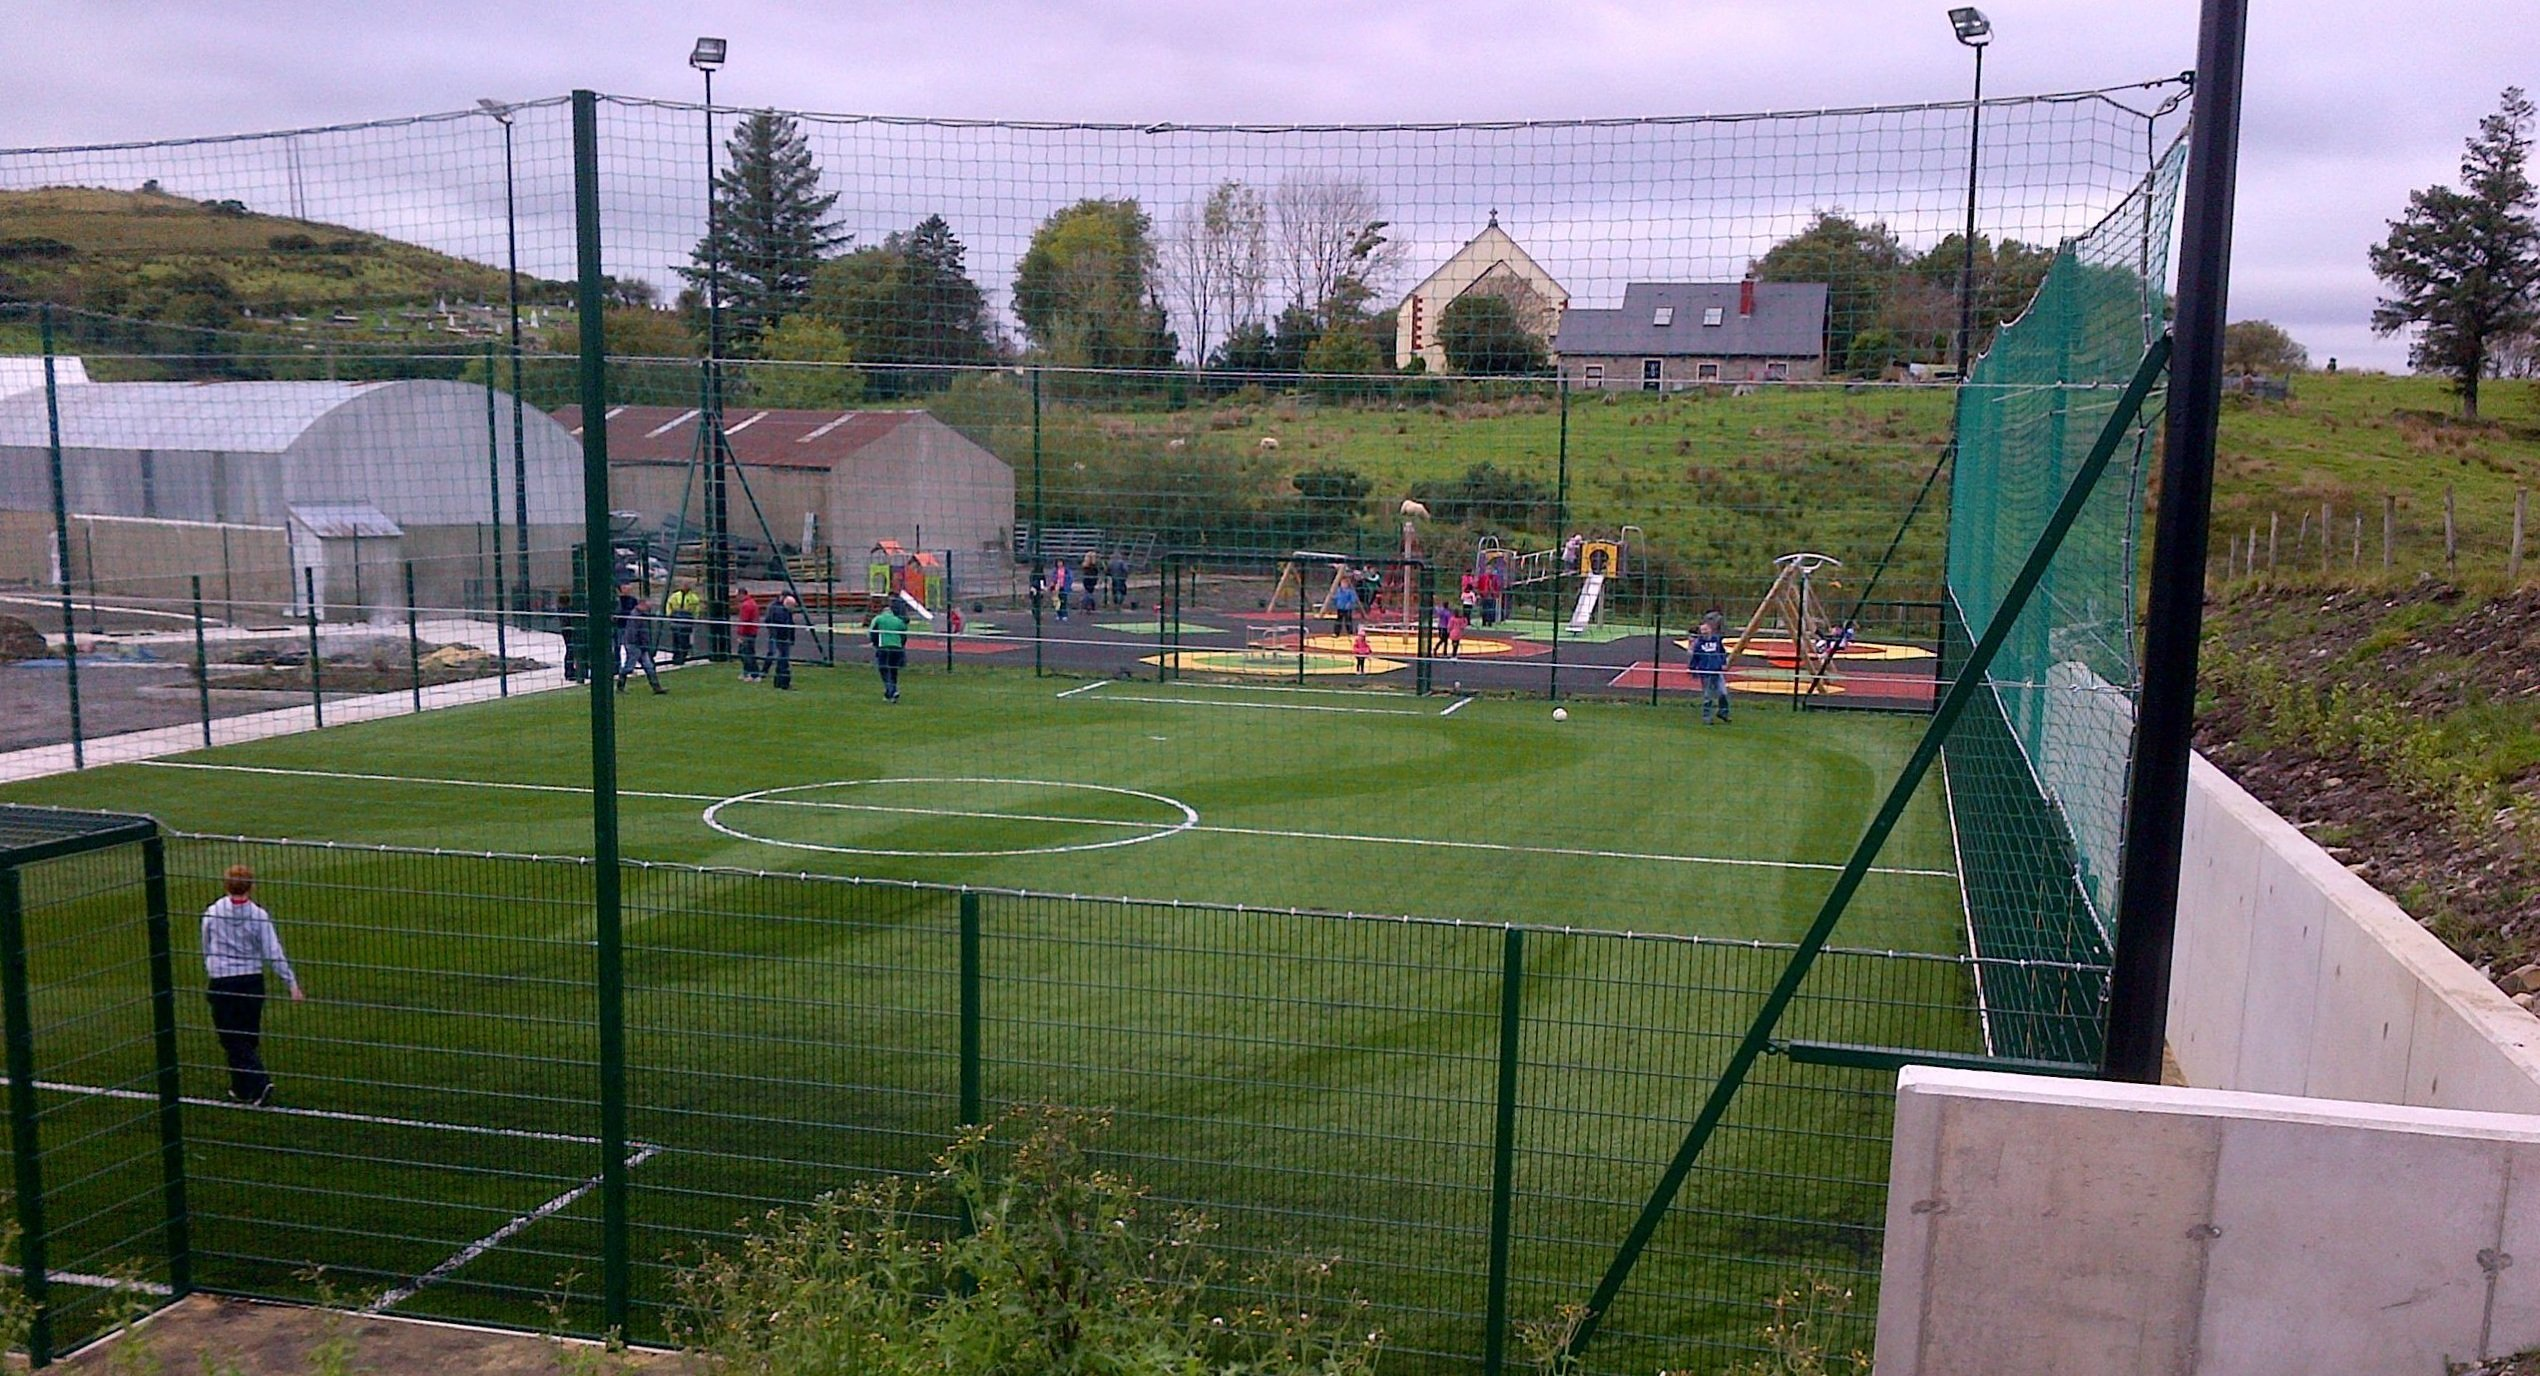 Boys playing on the football pitch